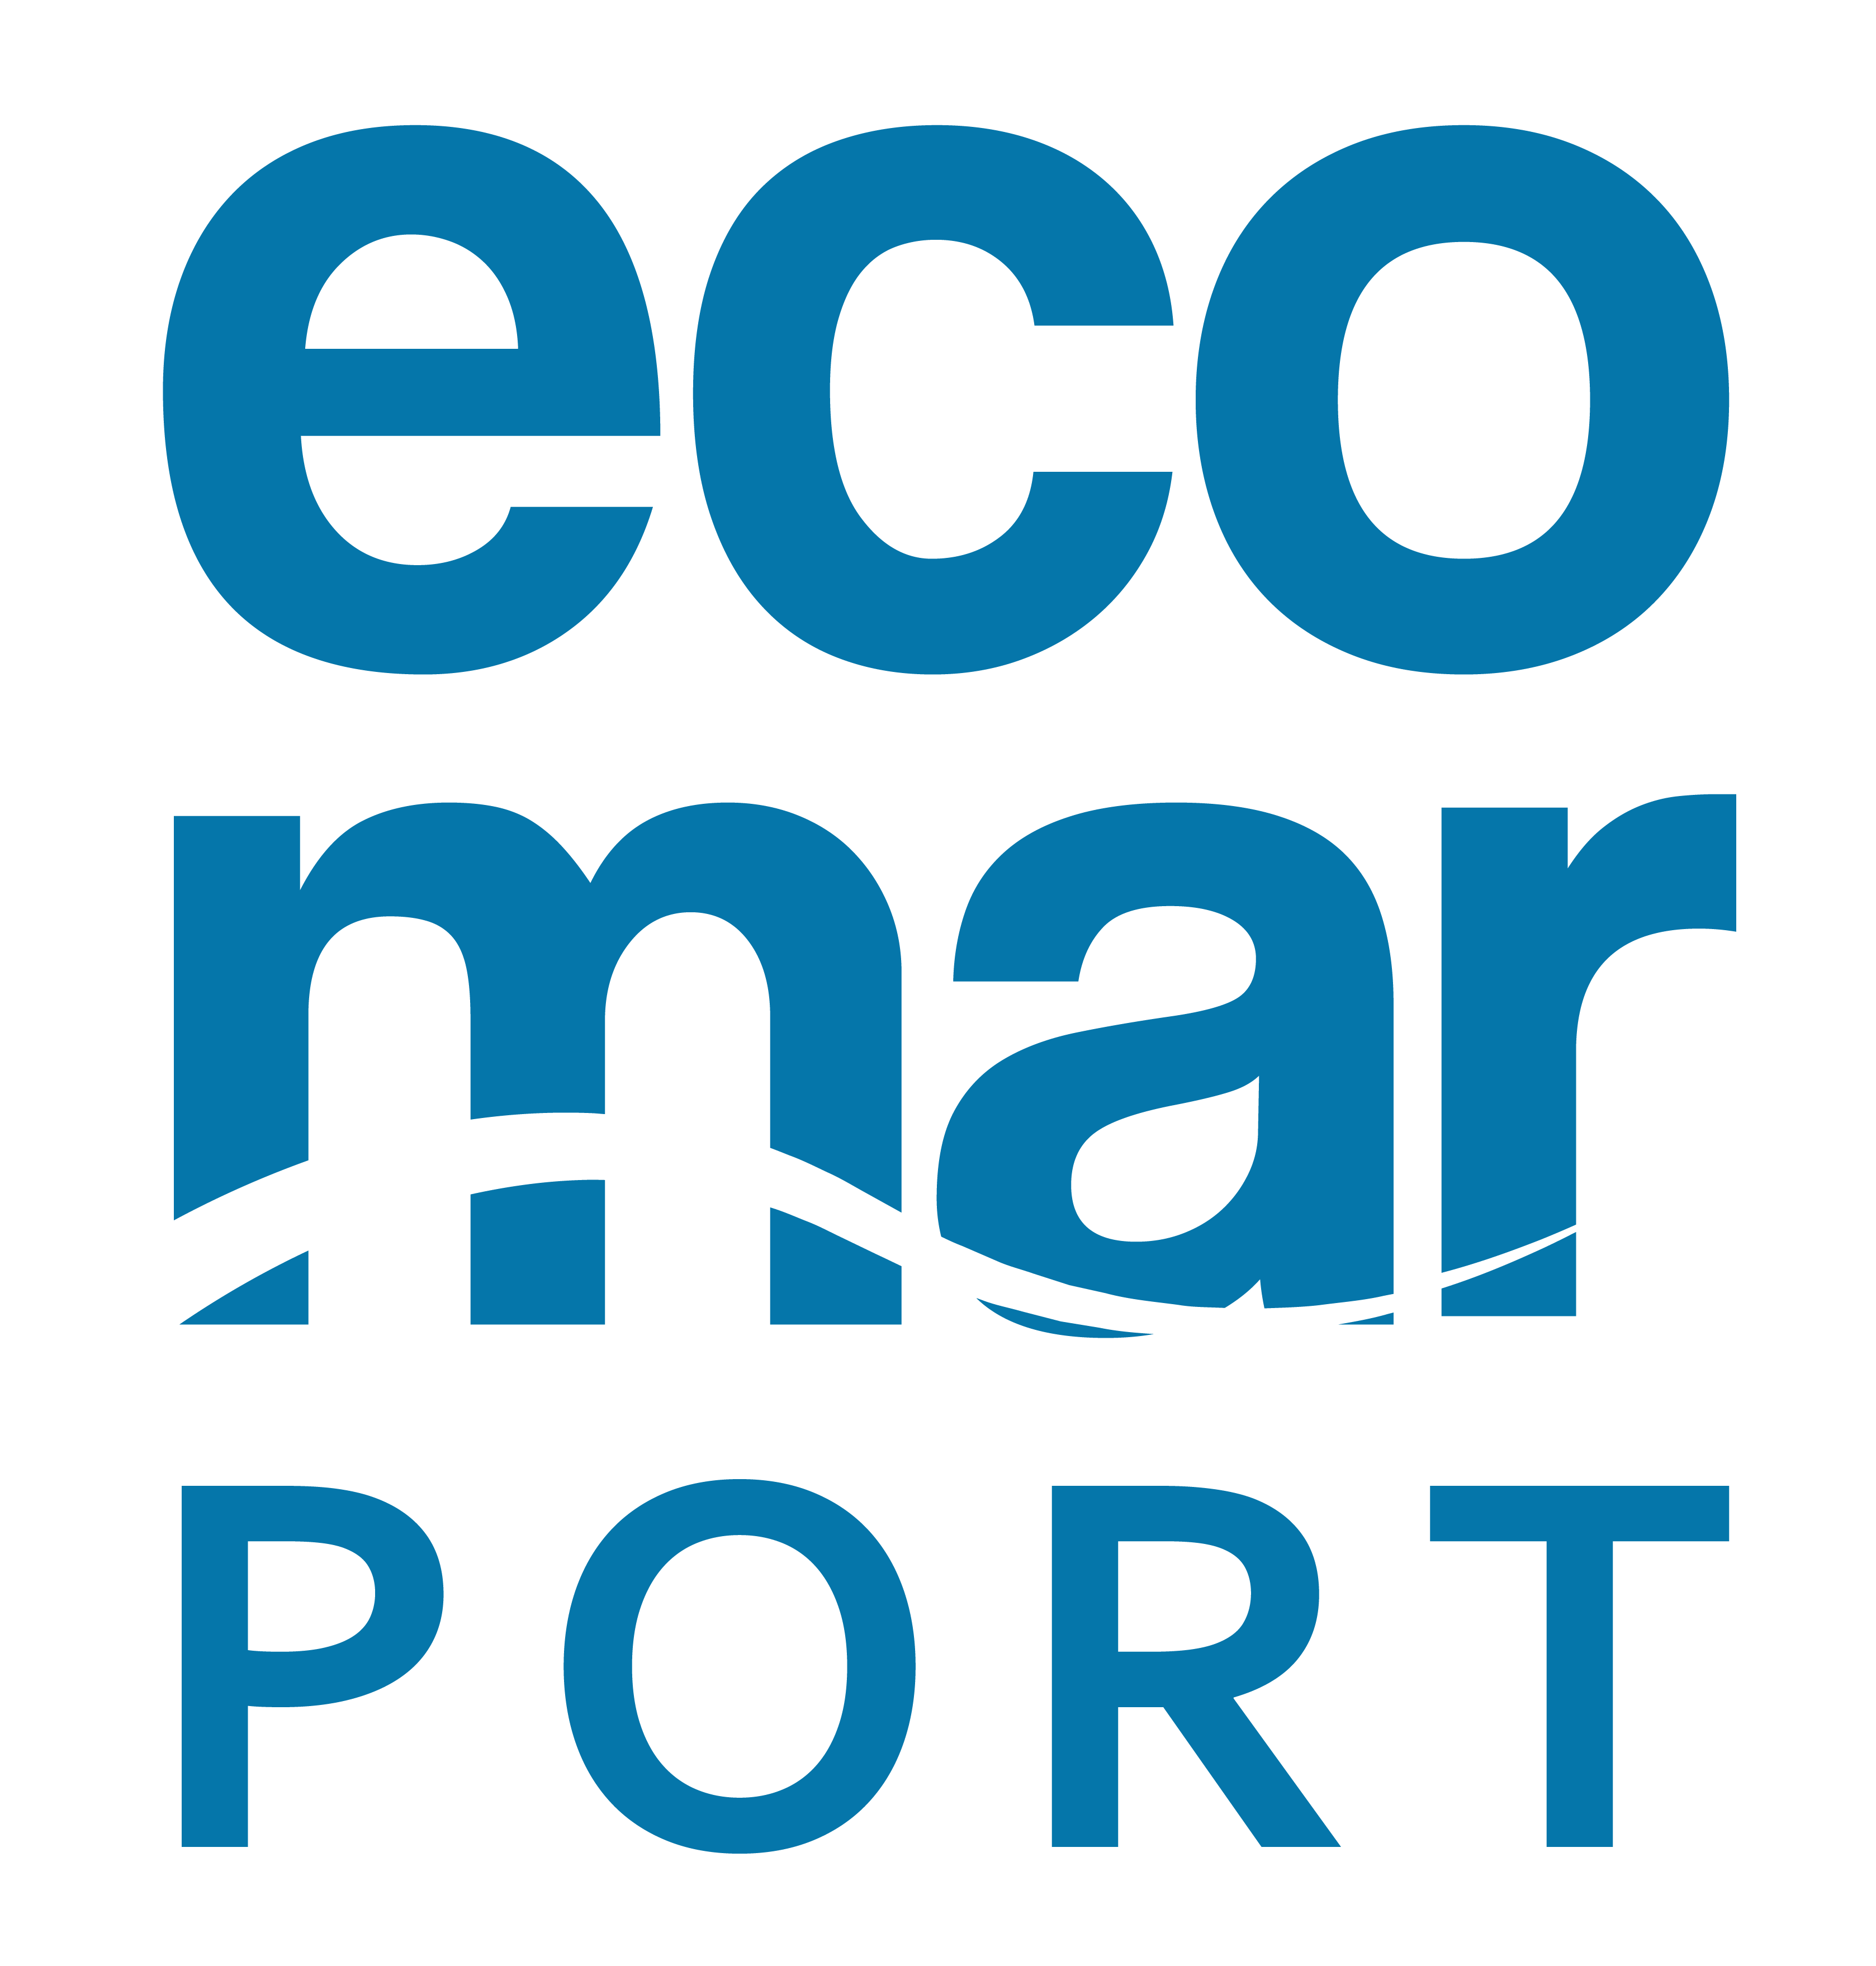 Eco Mar Port